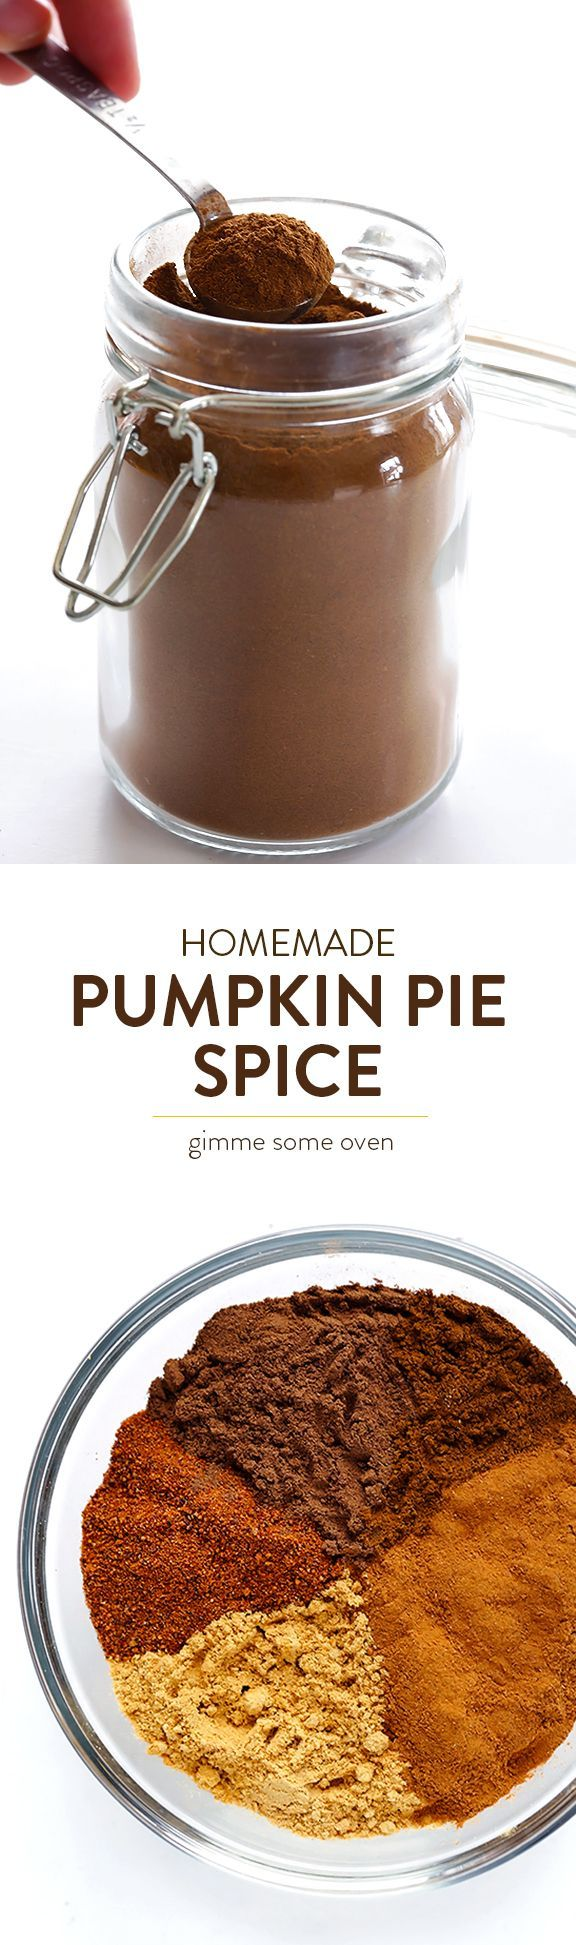 Learn how to make homemade Pumpkin Pie Spice with this quick and easy recipe! | http://gimmesomeoven.com